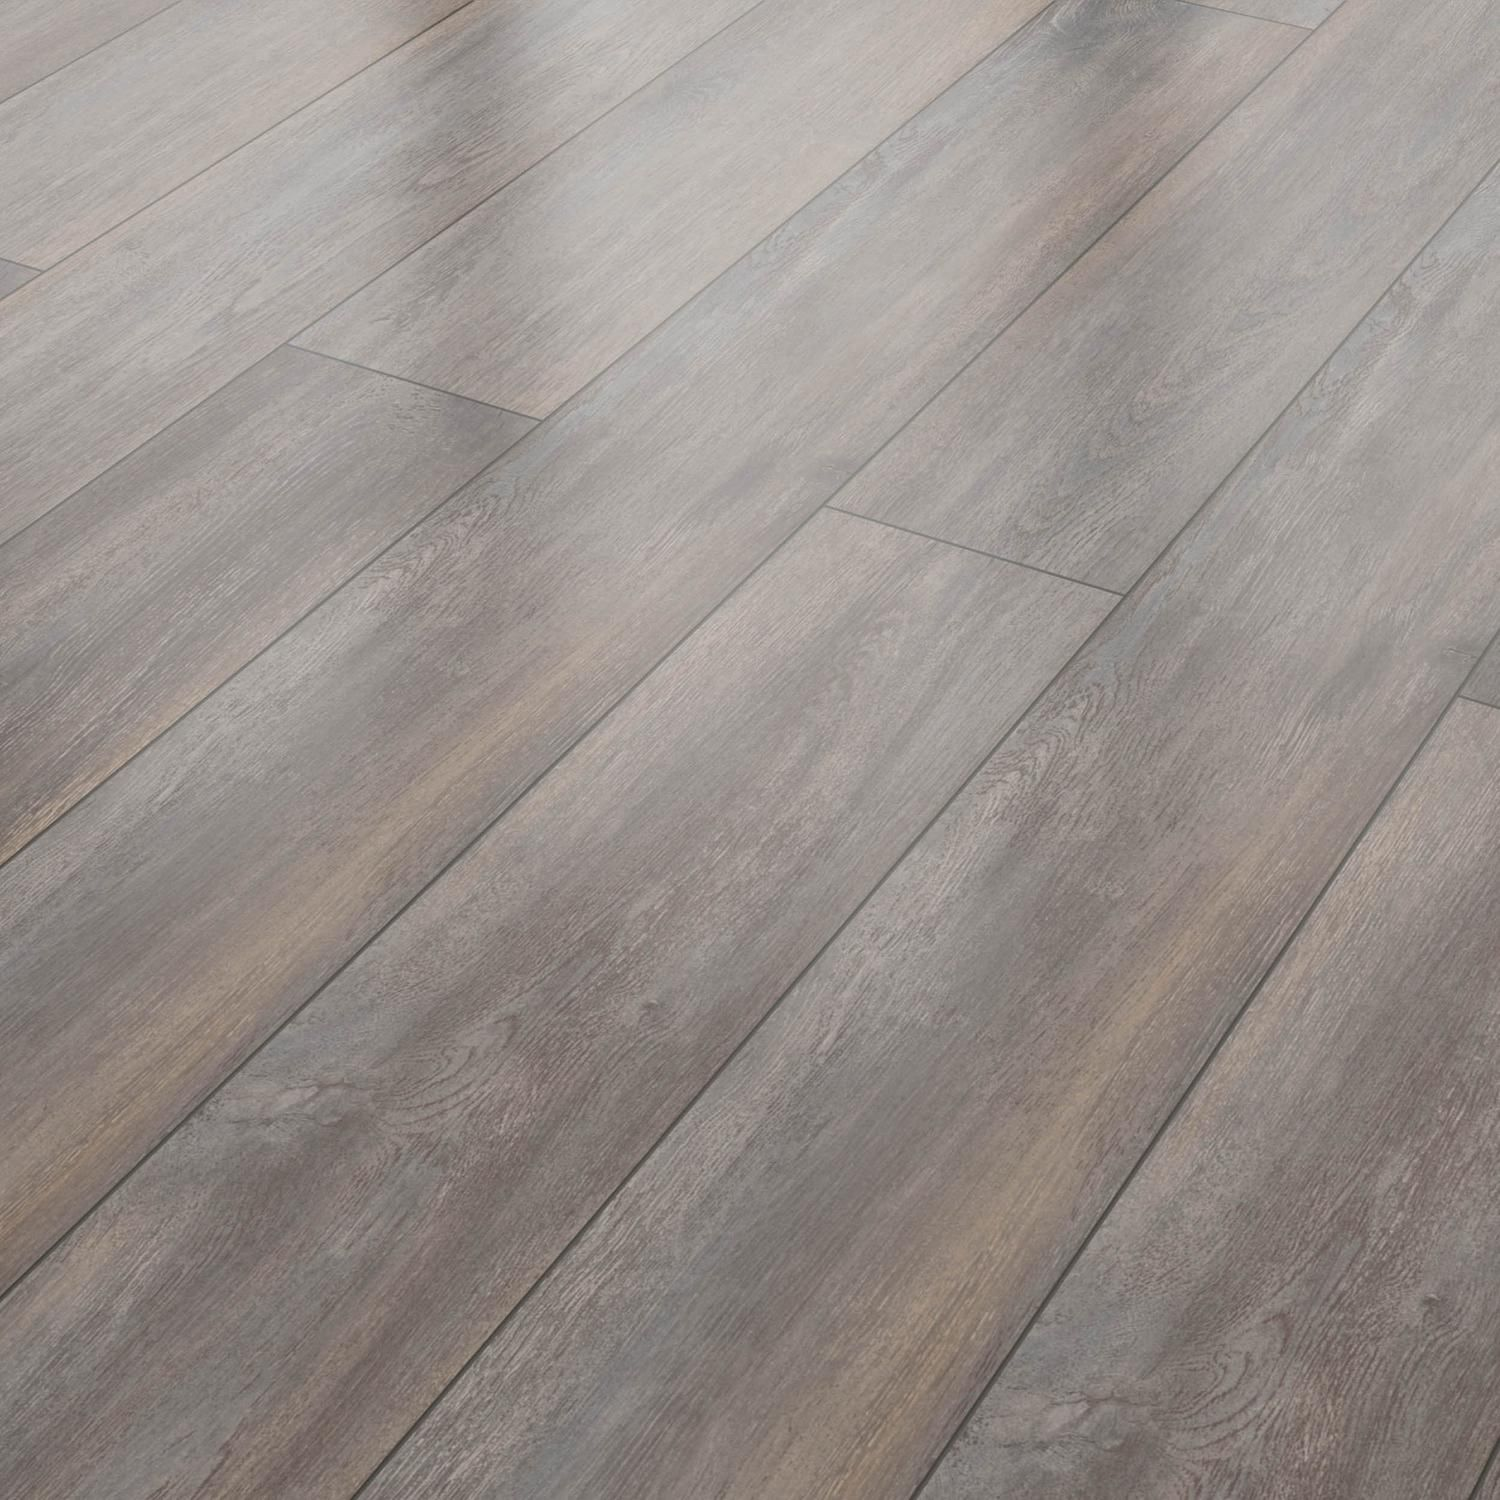 Washington Spruce Laminate Floor Decor Flooring Hardwood Floors Laminate Flooring